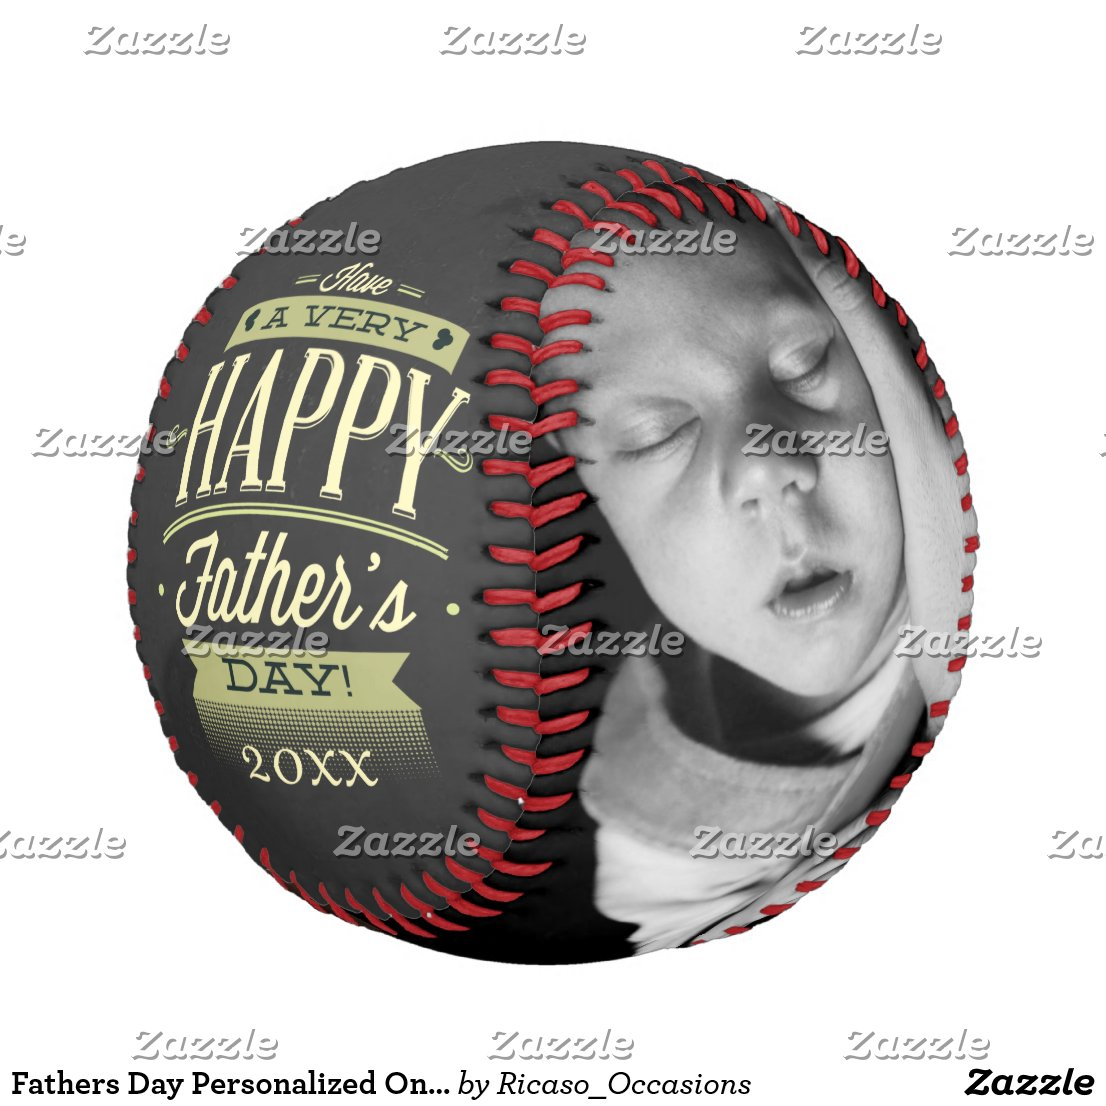 Fathers Day Personalized One Of A Kind Baseball